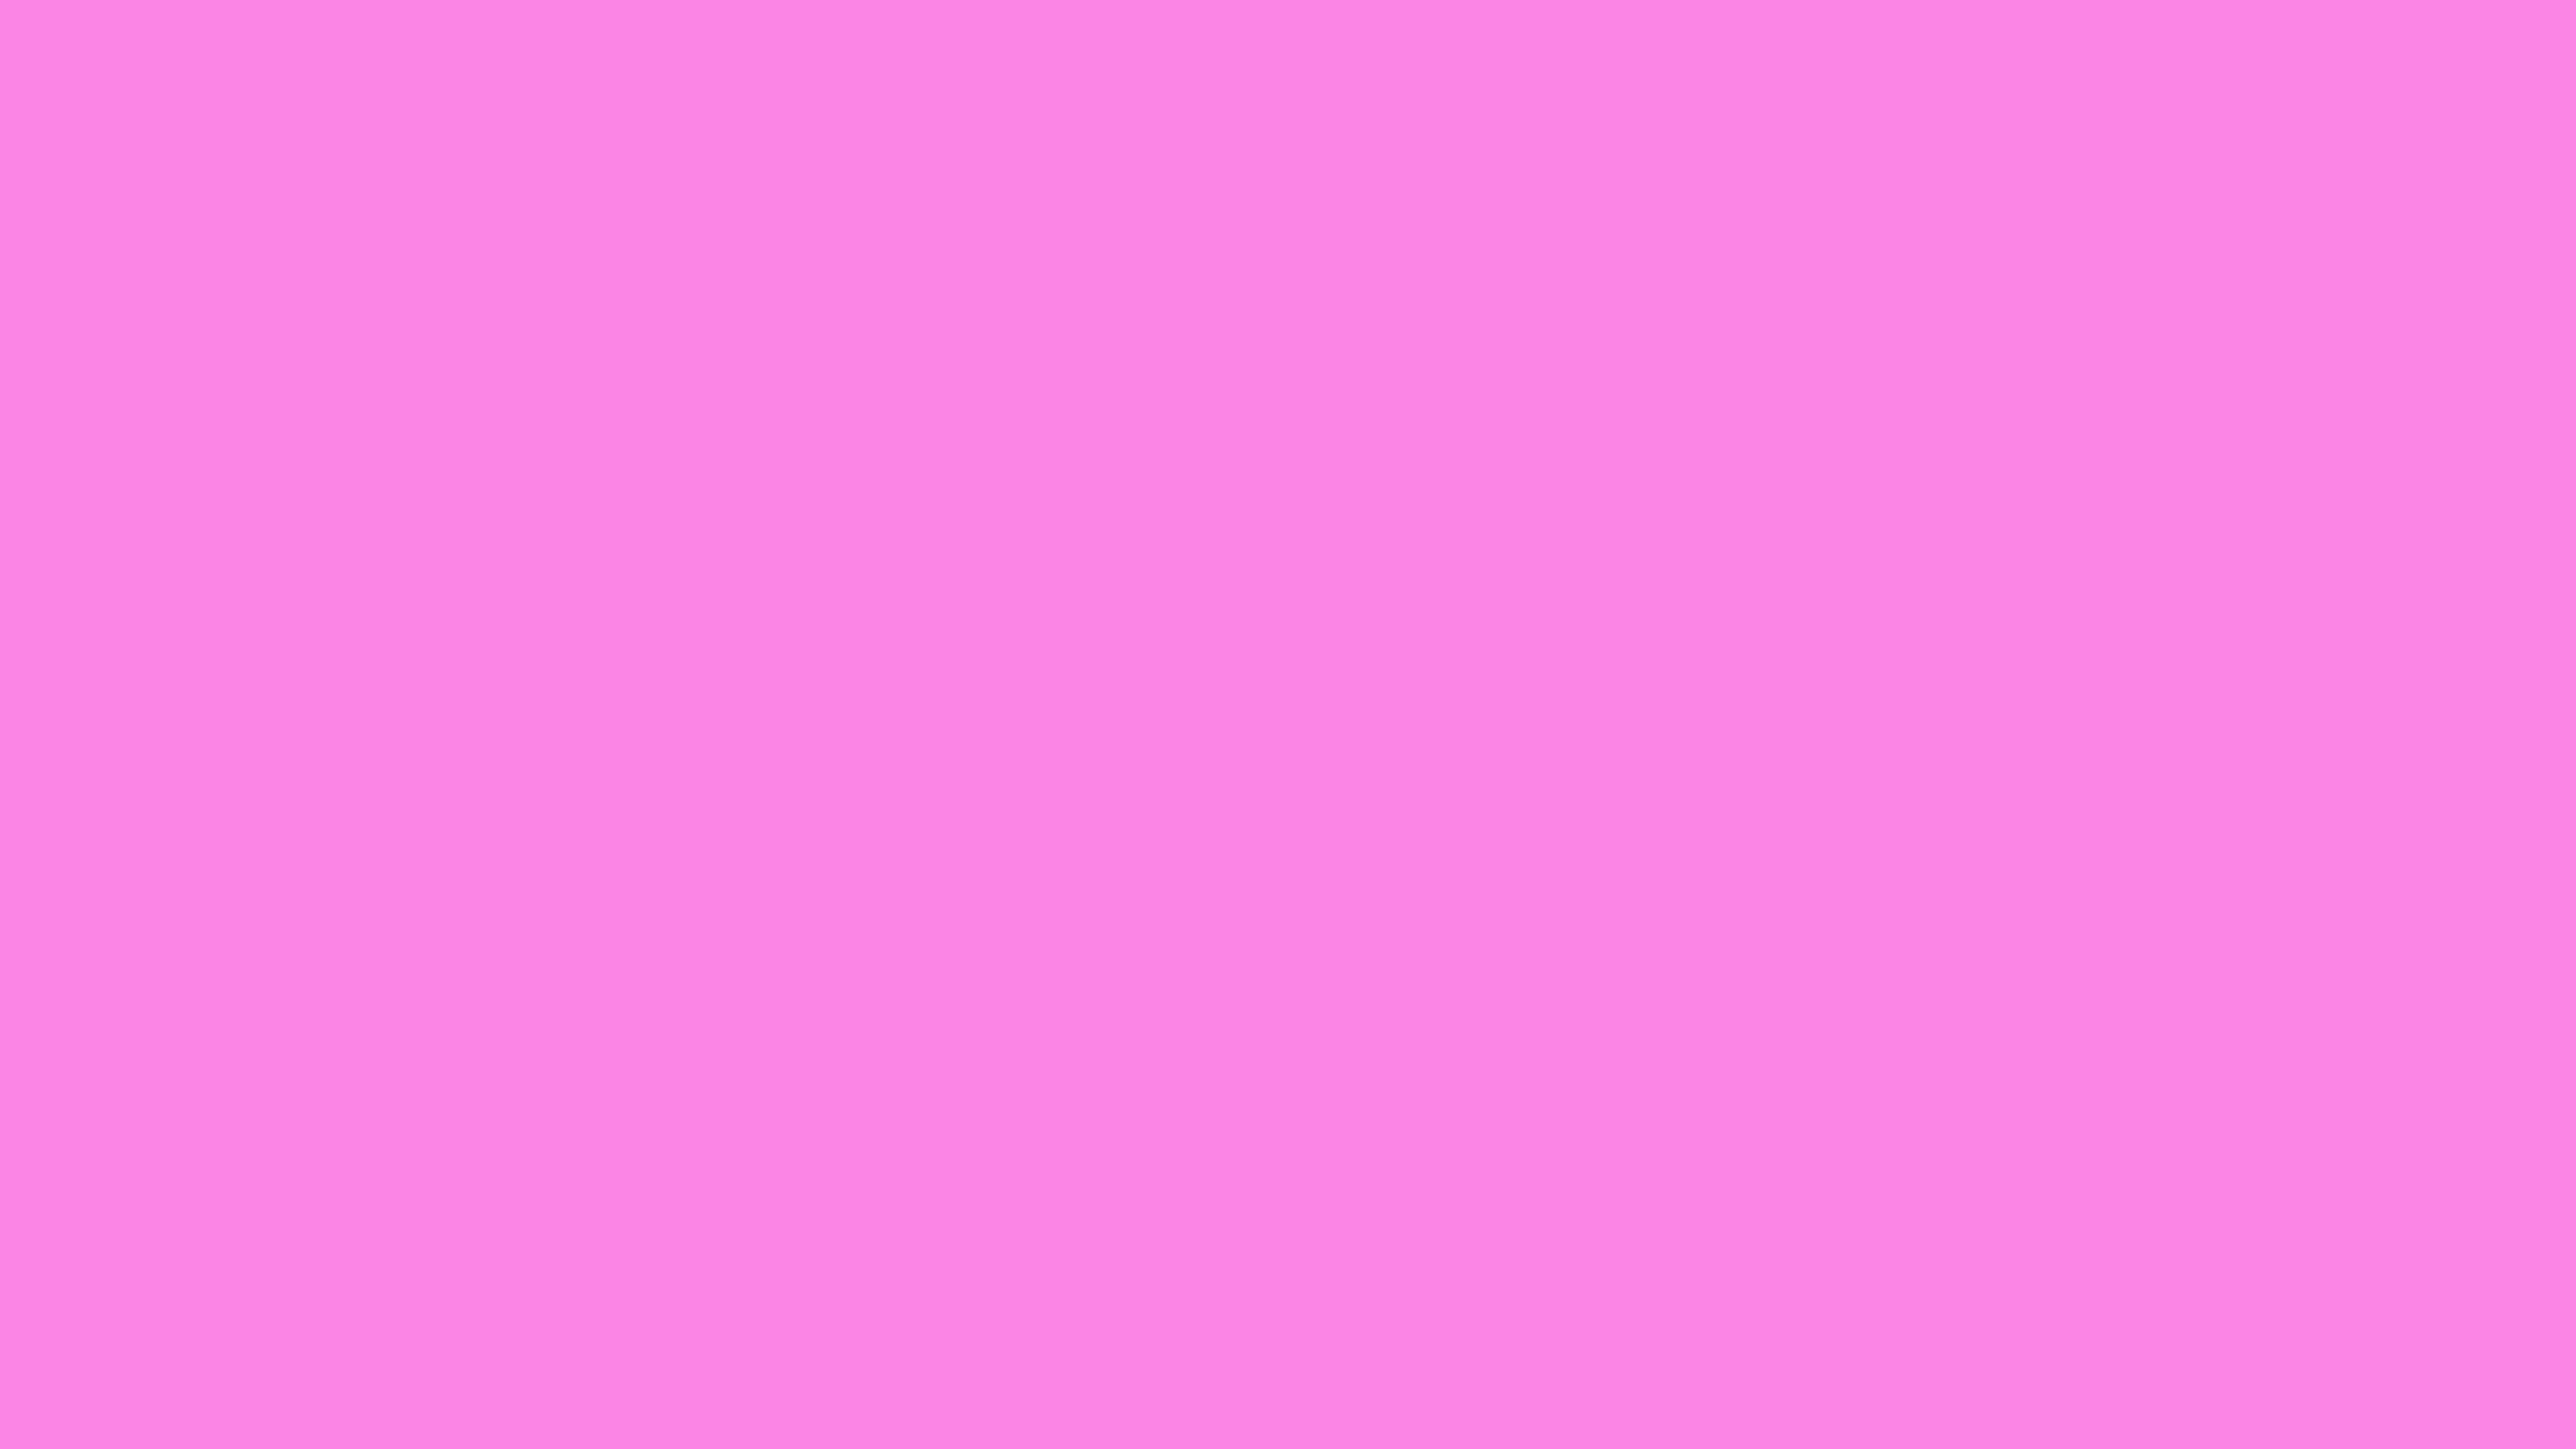 4096x2304 Pale Magenta Solid Color Background